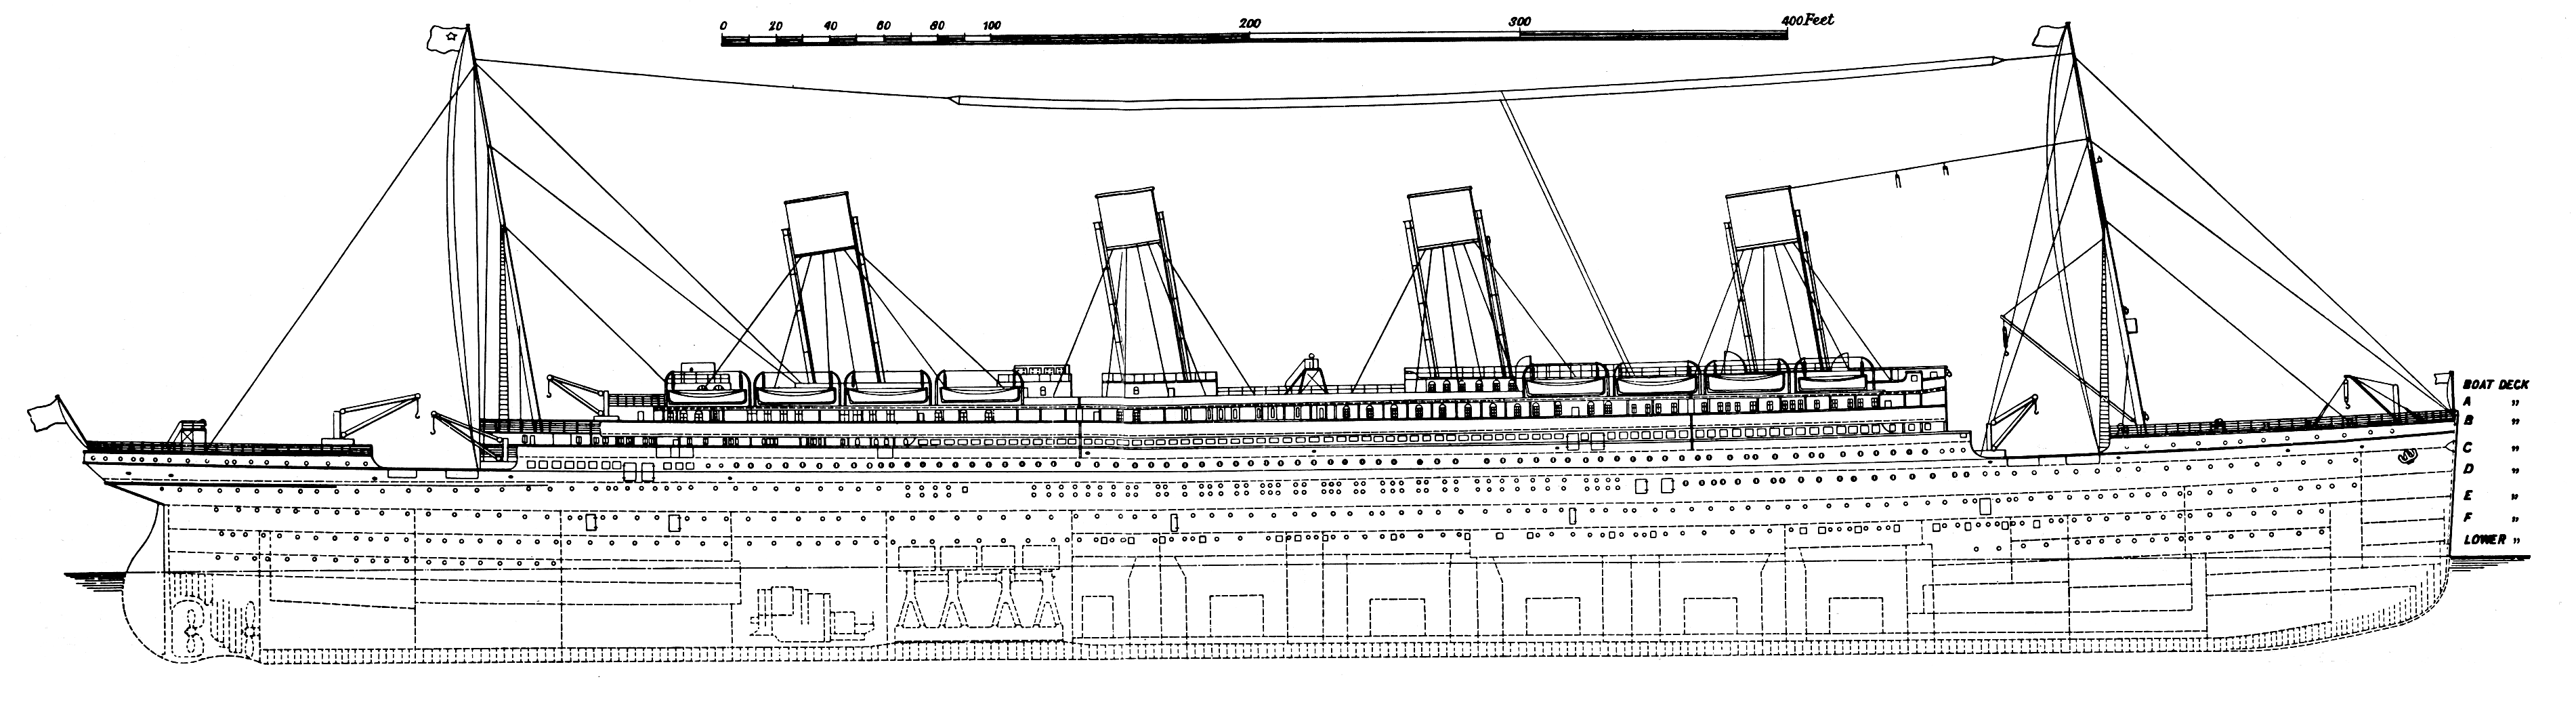 small resolution of titanic cross section